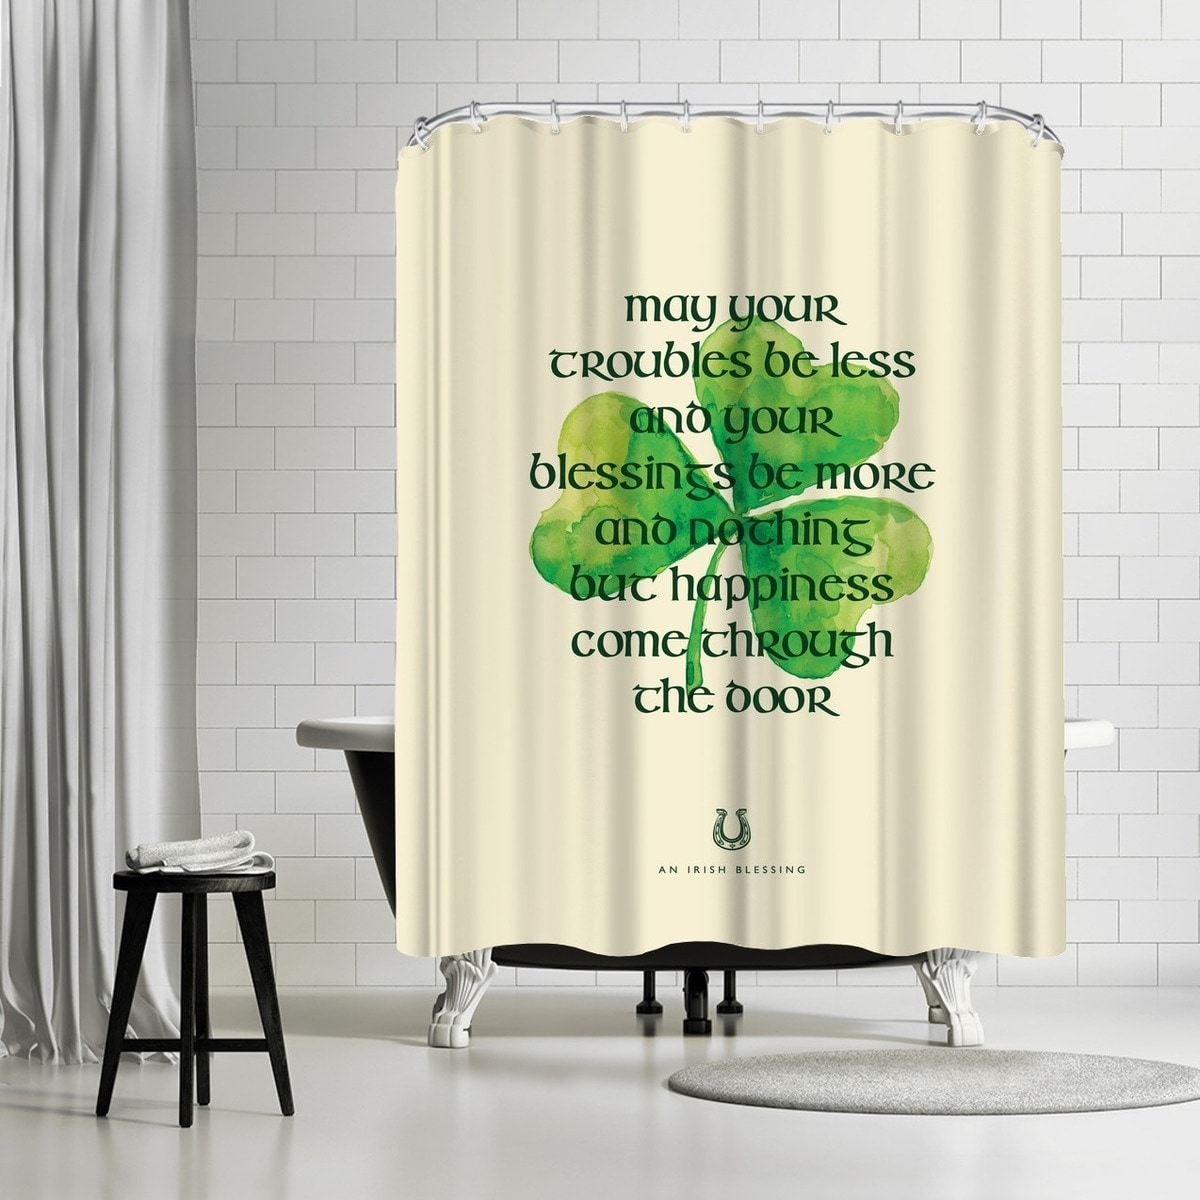 Shower Curtains For Less Americanflat May Your Troubles Be Less Shower Curtain